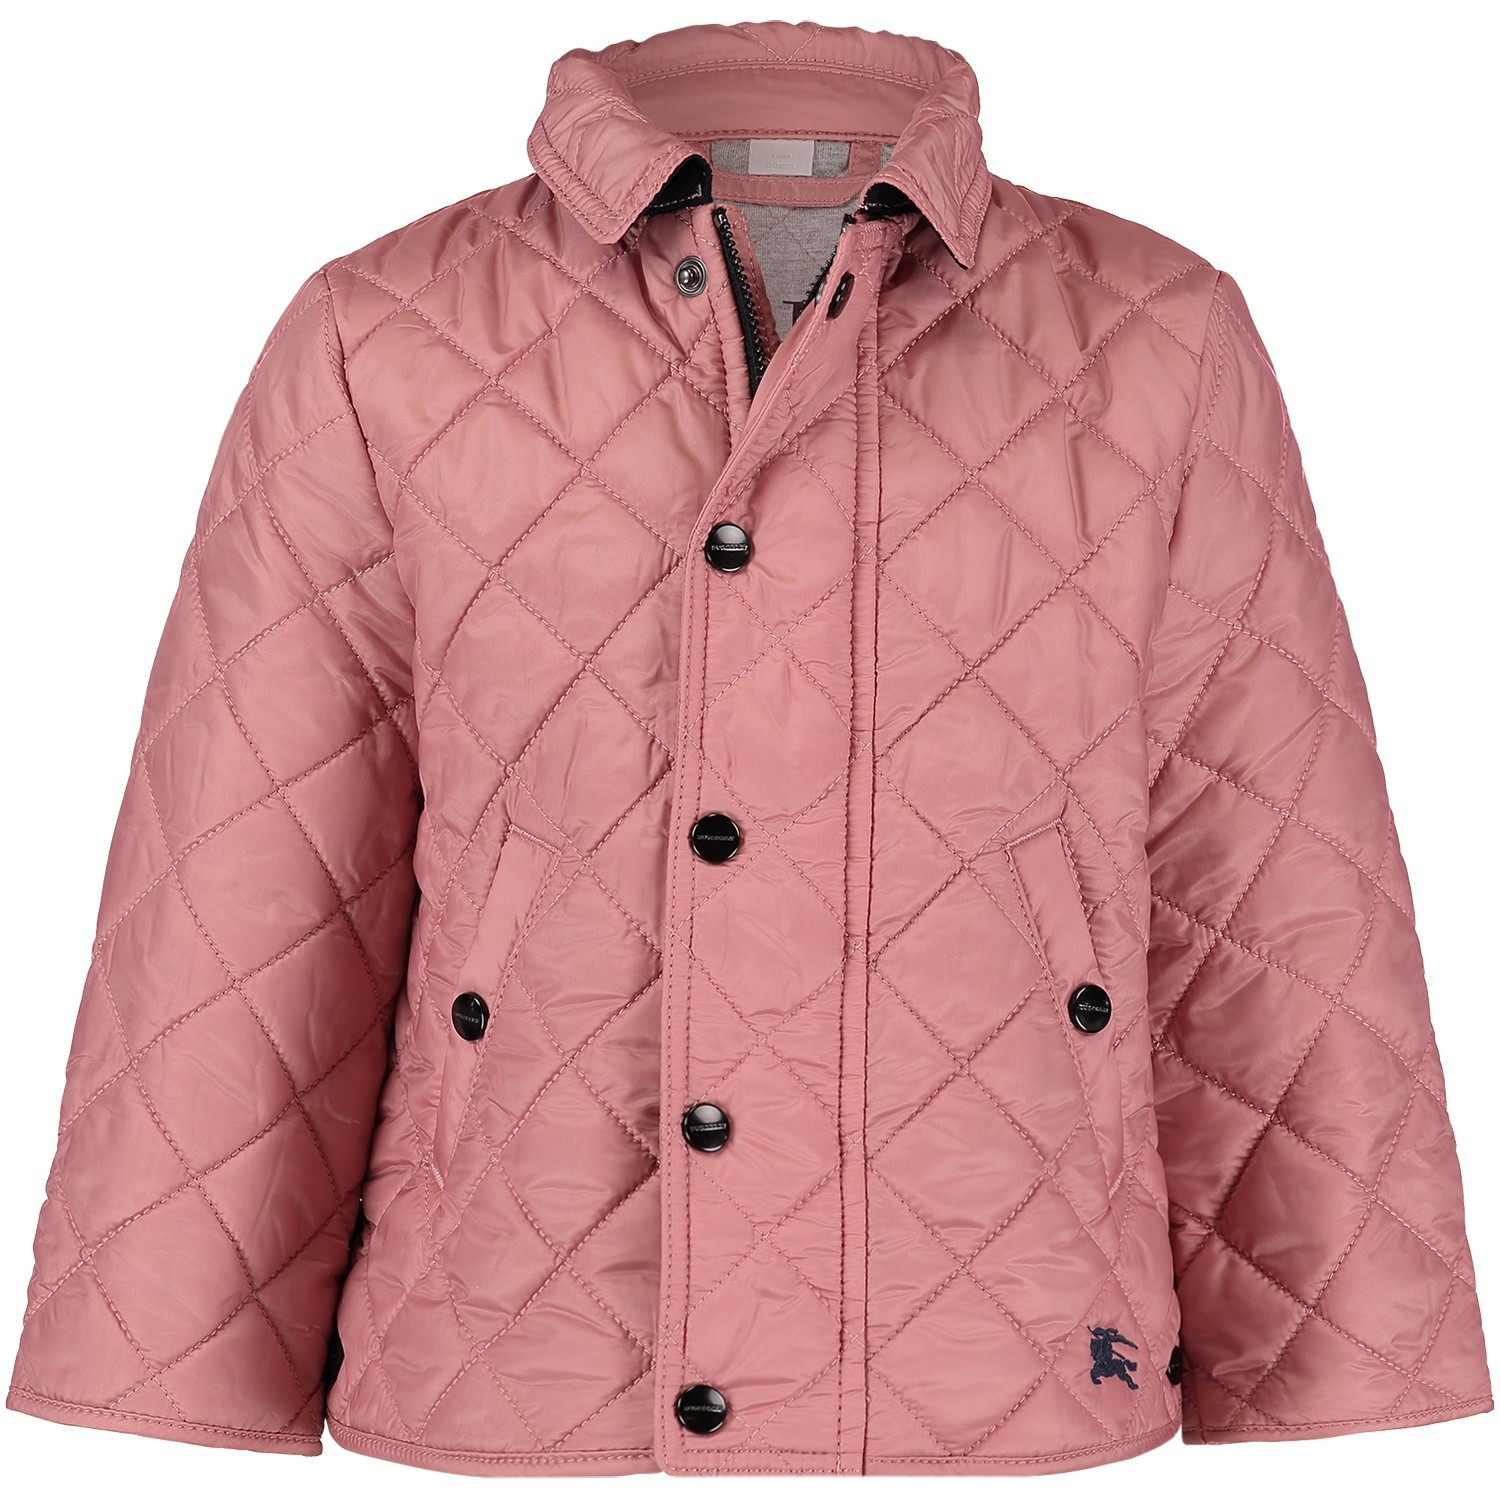 Picture of Burberry 8002696 baby coat light pink